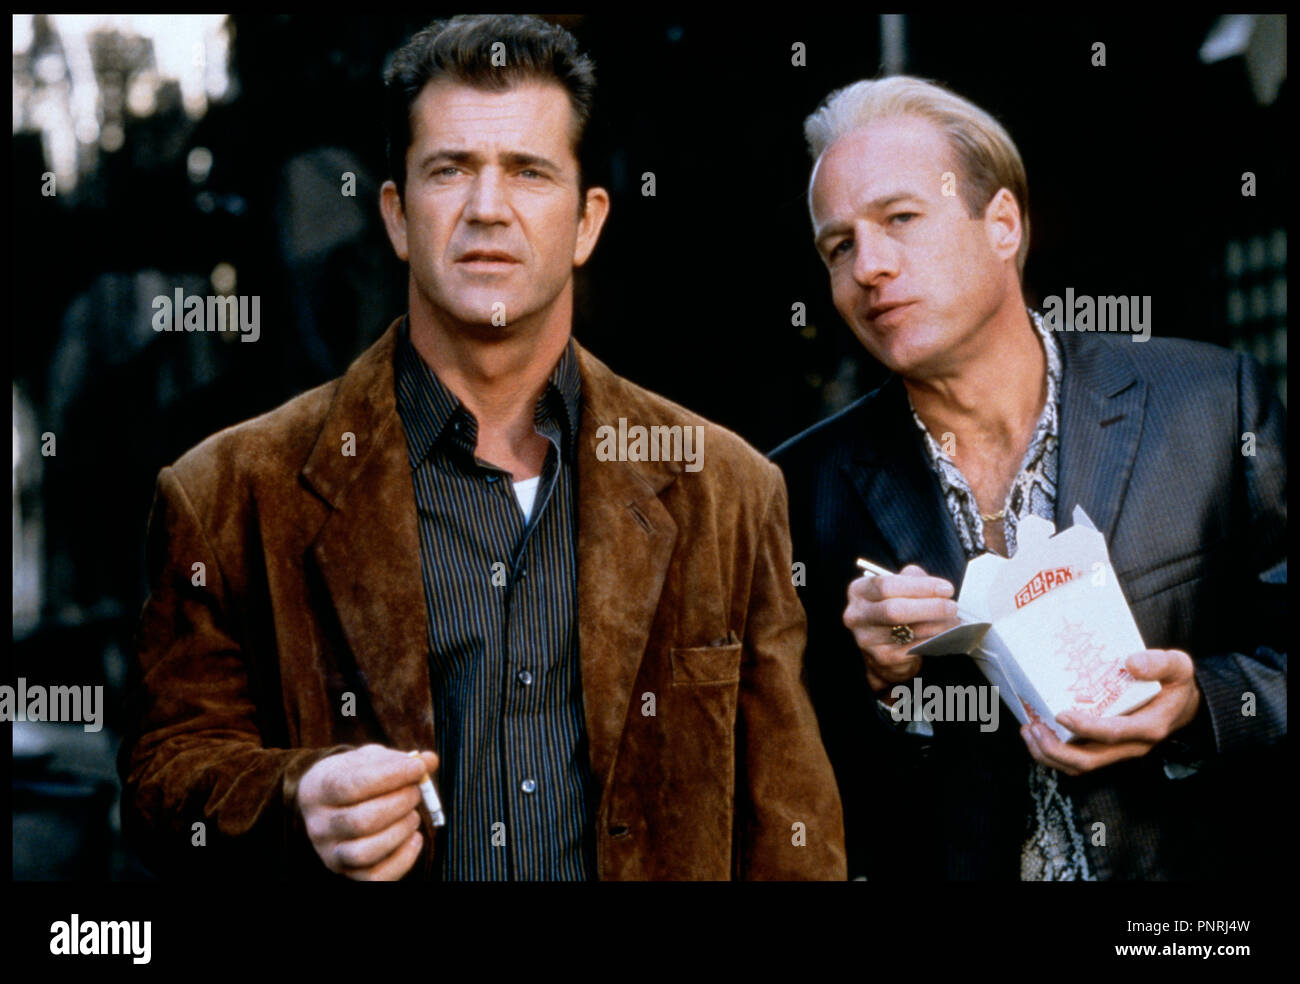 mel gibson payback 1999 stock photos mel gibson payback 1999 stock images alamy. Black Bedroom Furniture Sets. Home Design Ideas